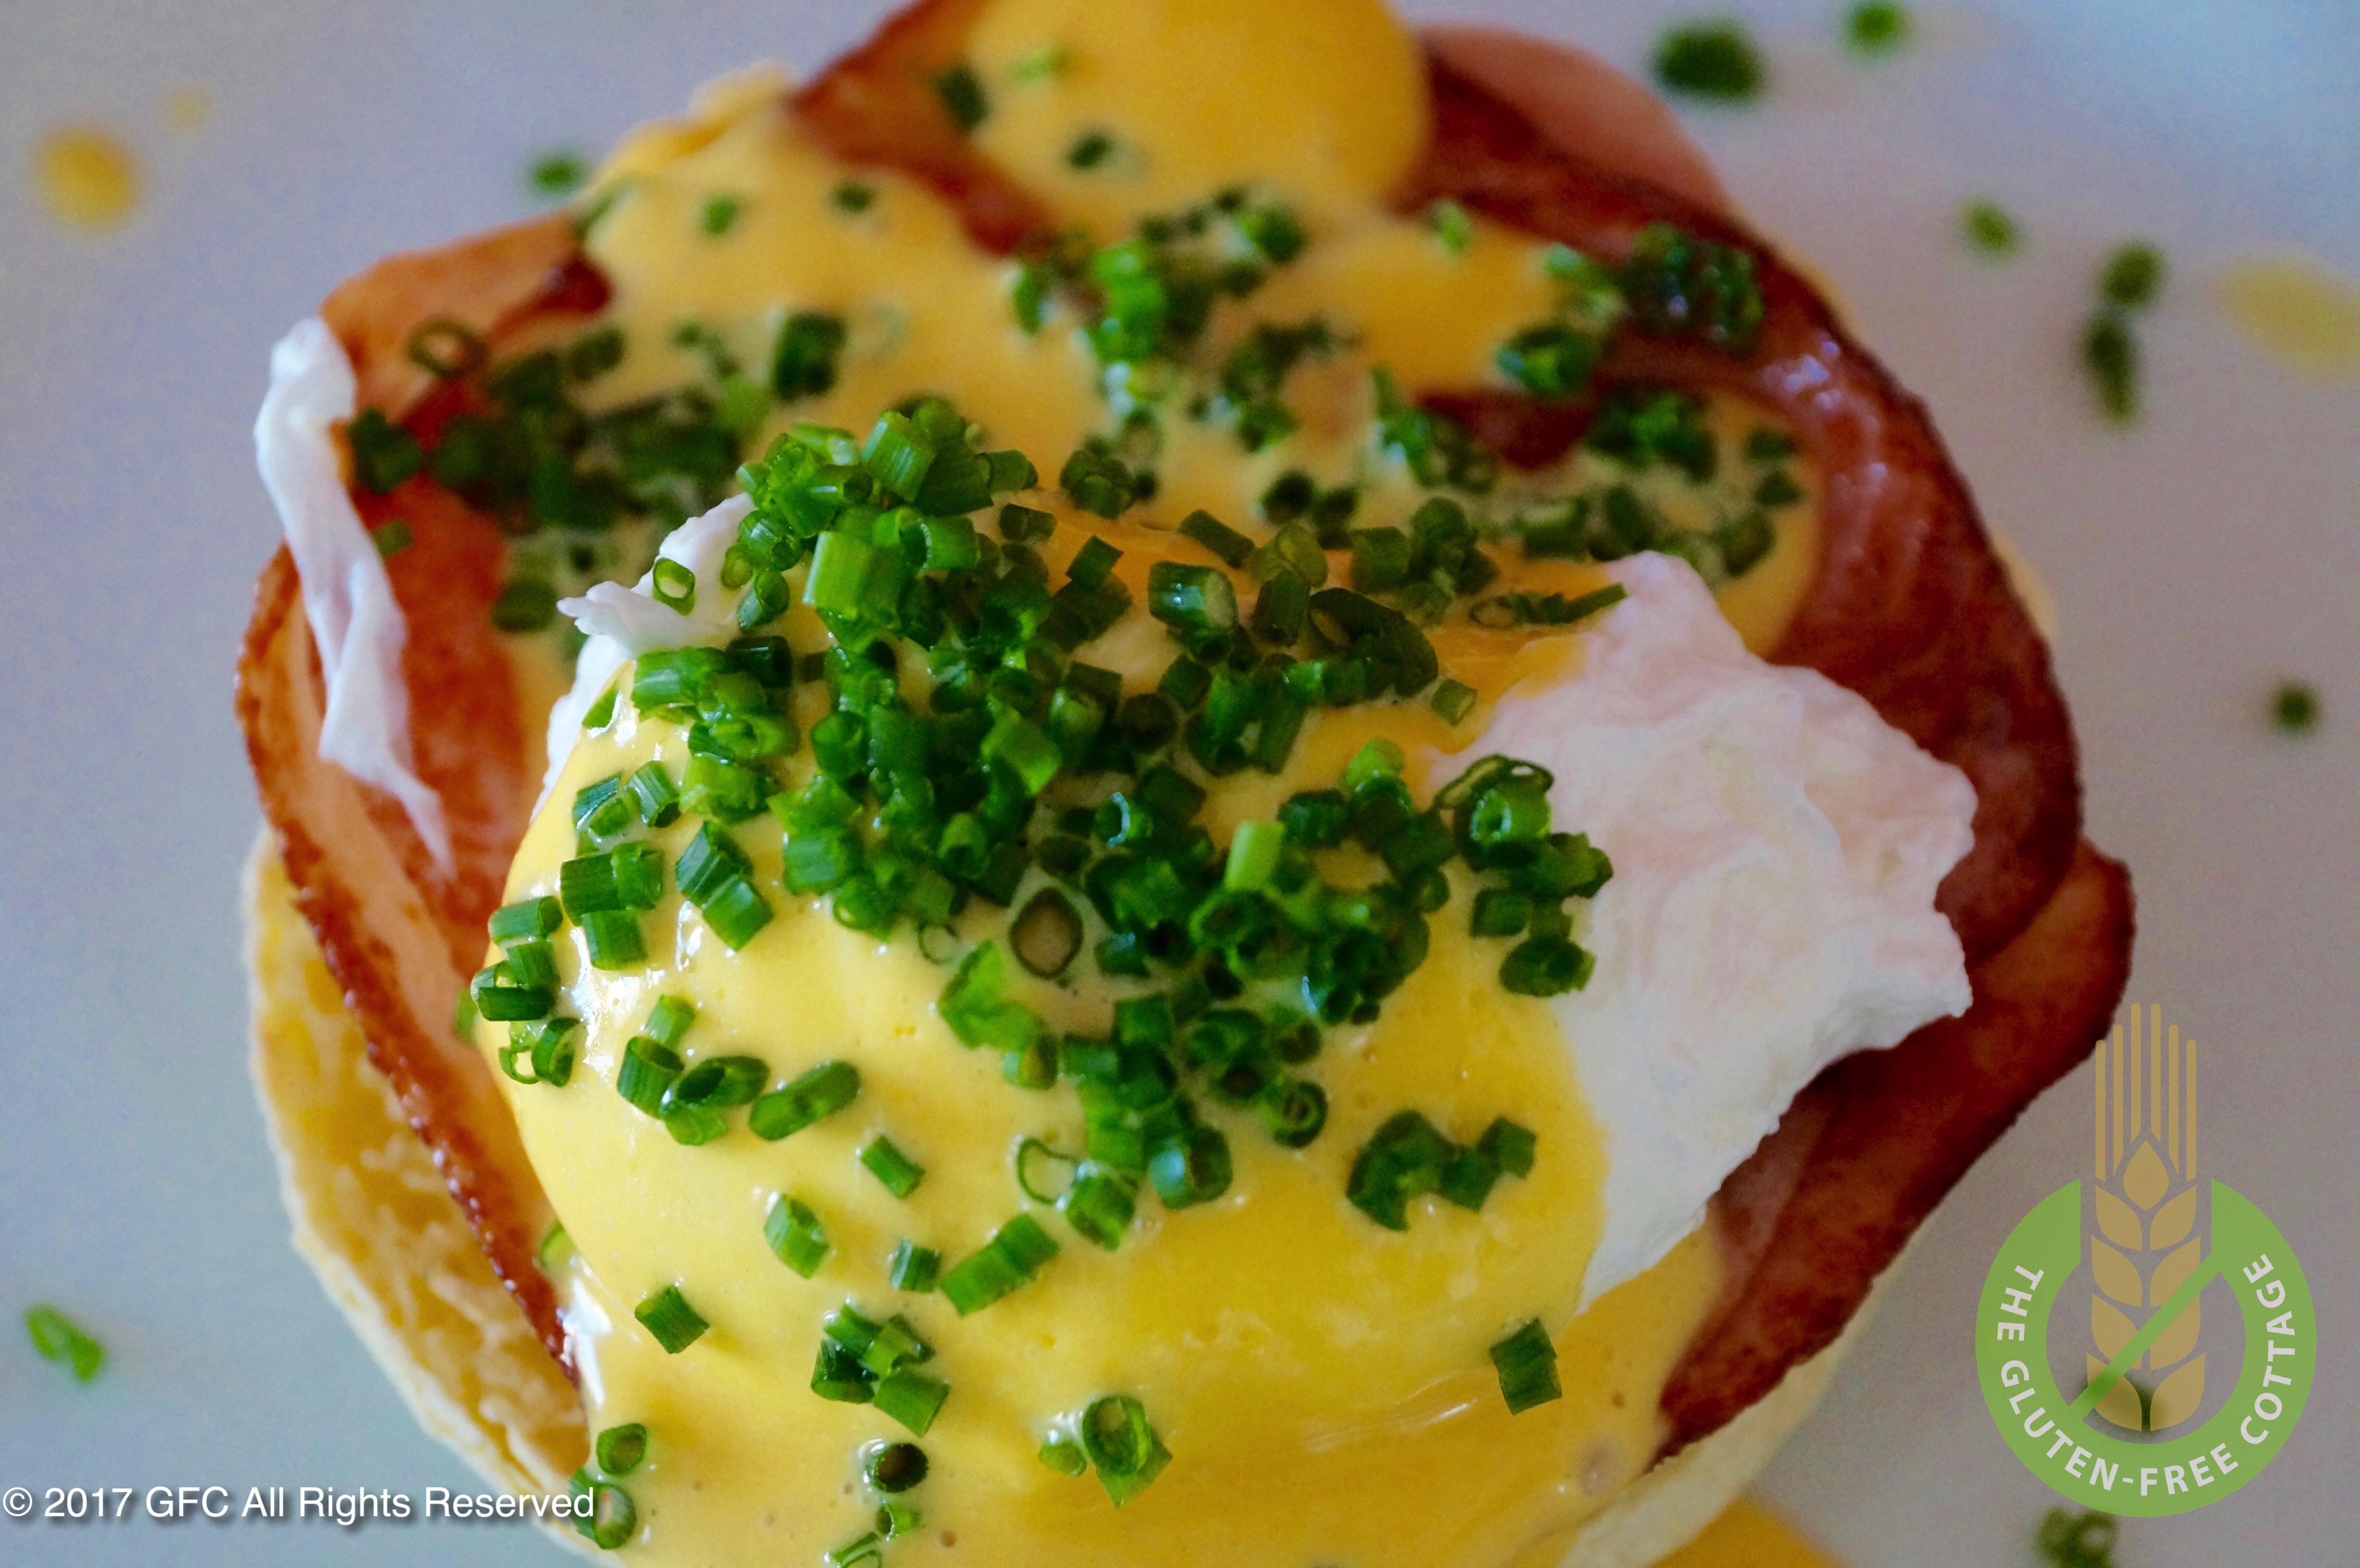 Eggs Benedict on top of gluten-free English muffins (gluten-free eggs Benedict/ gluten-free English muffins).